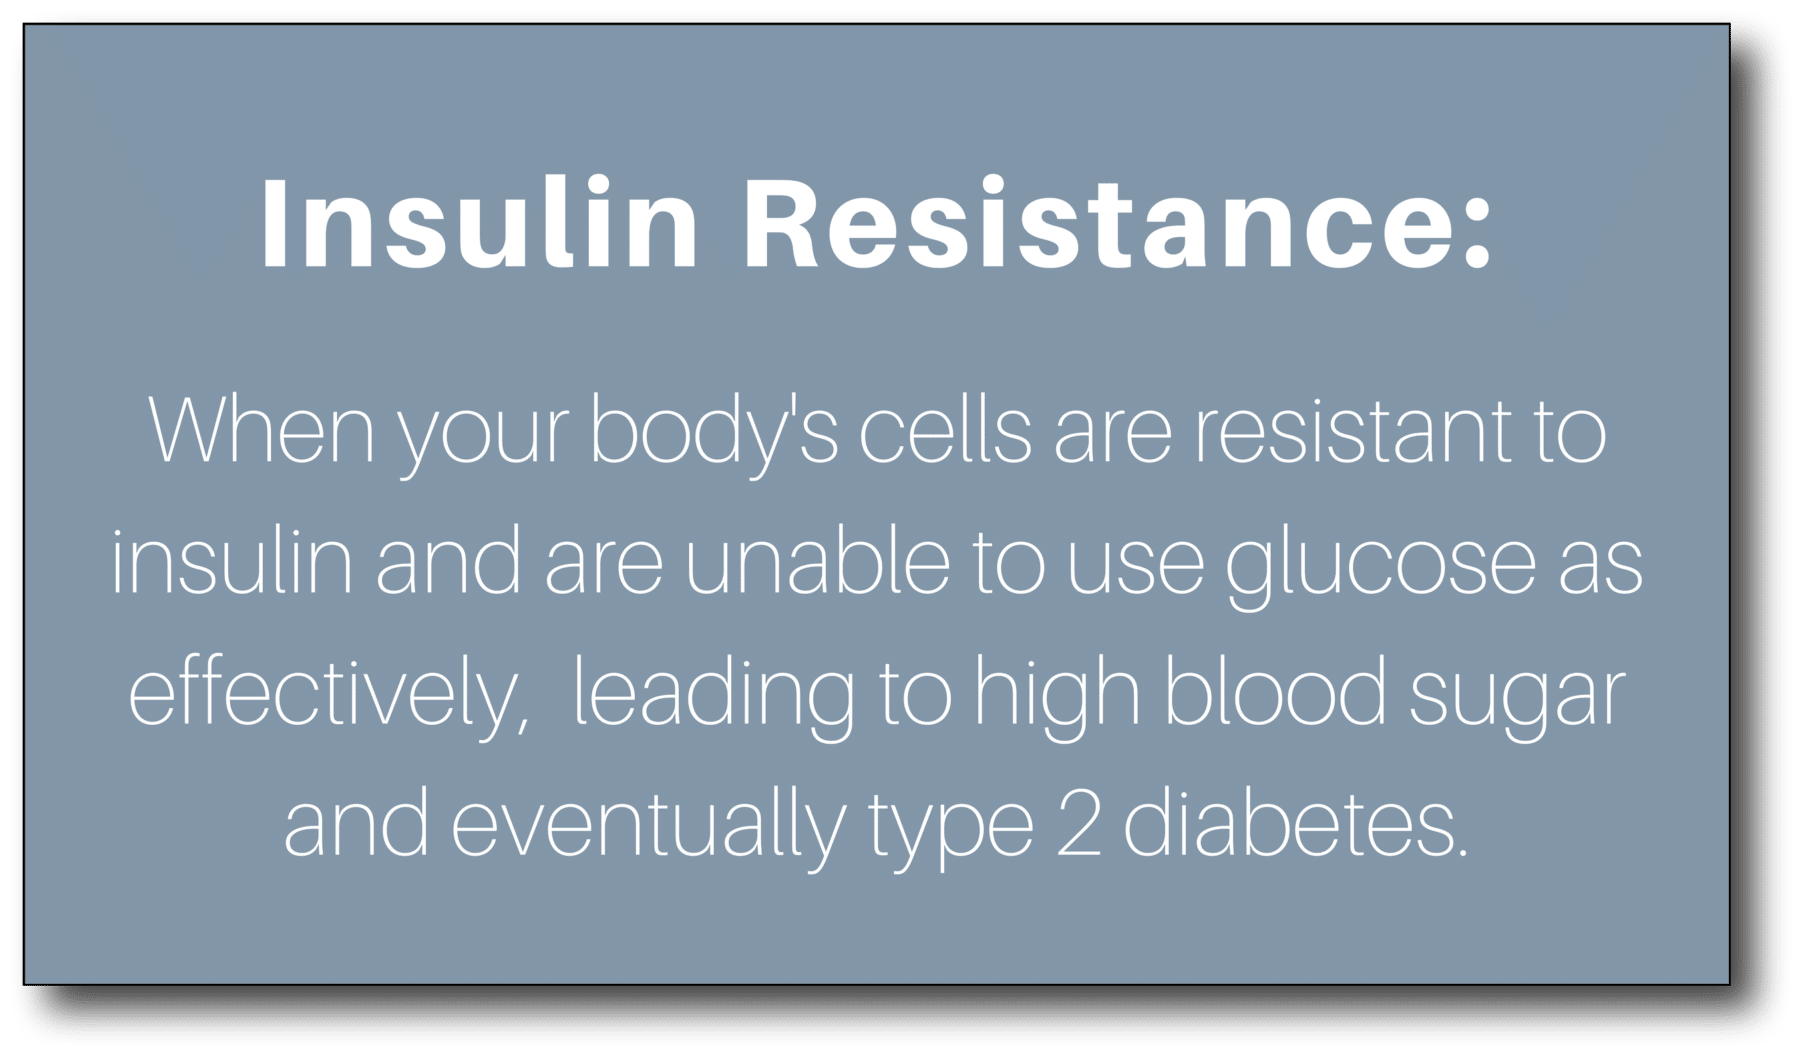 Losing weight after 50 - Insulin Resistance